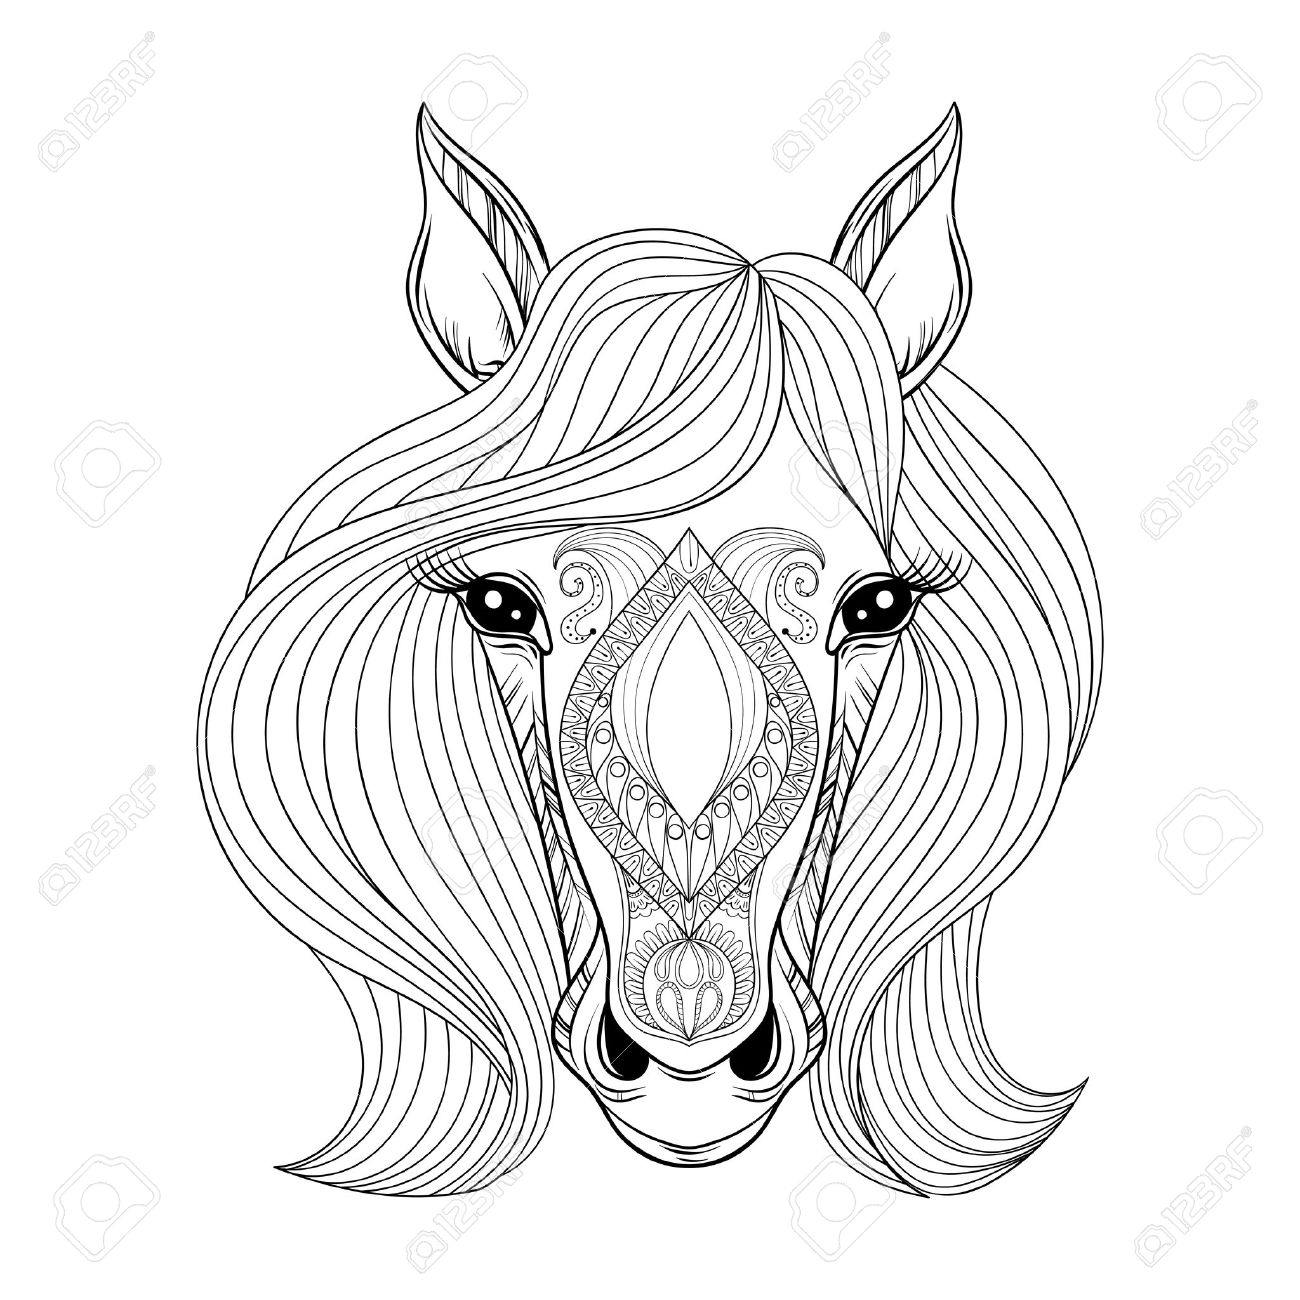 Vector Horse. Coloring Page With Zentangled Horse Face. Hand ...